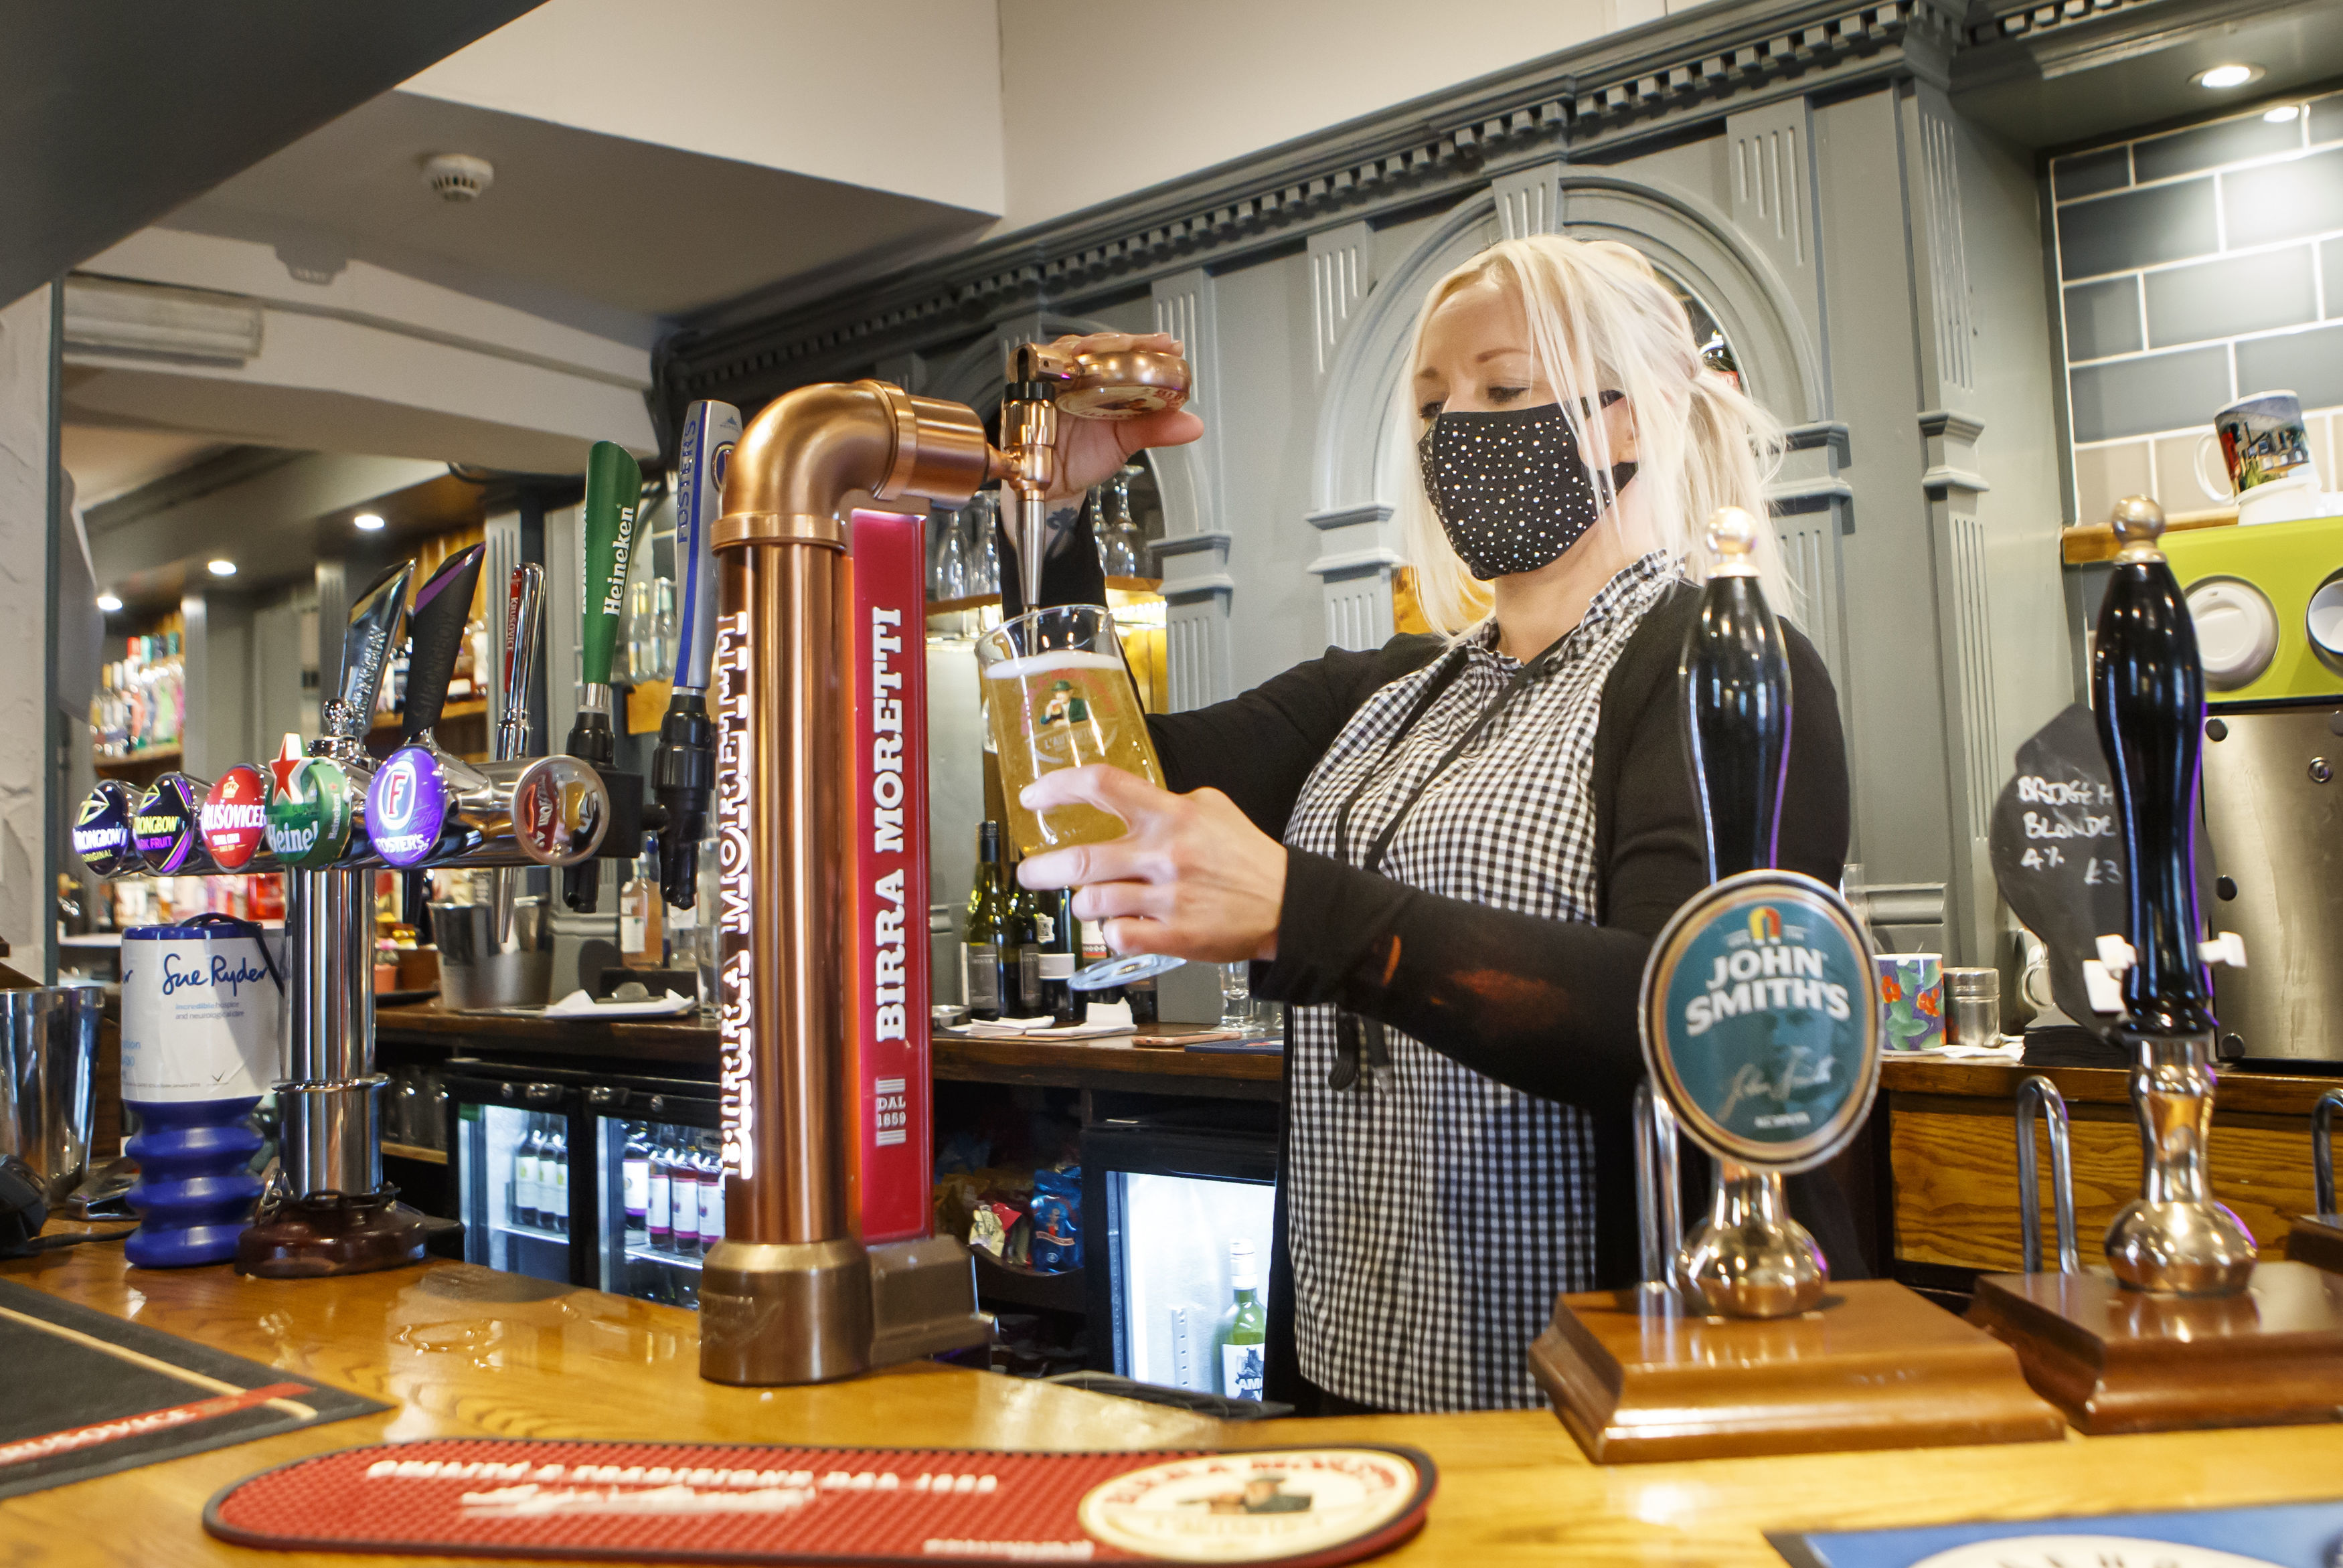 Pubs and restaurants are set to close from tongiht, although they'll be permitted to do delivery and takeaway